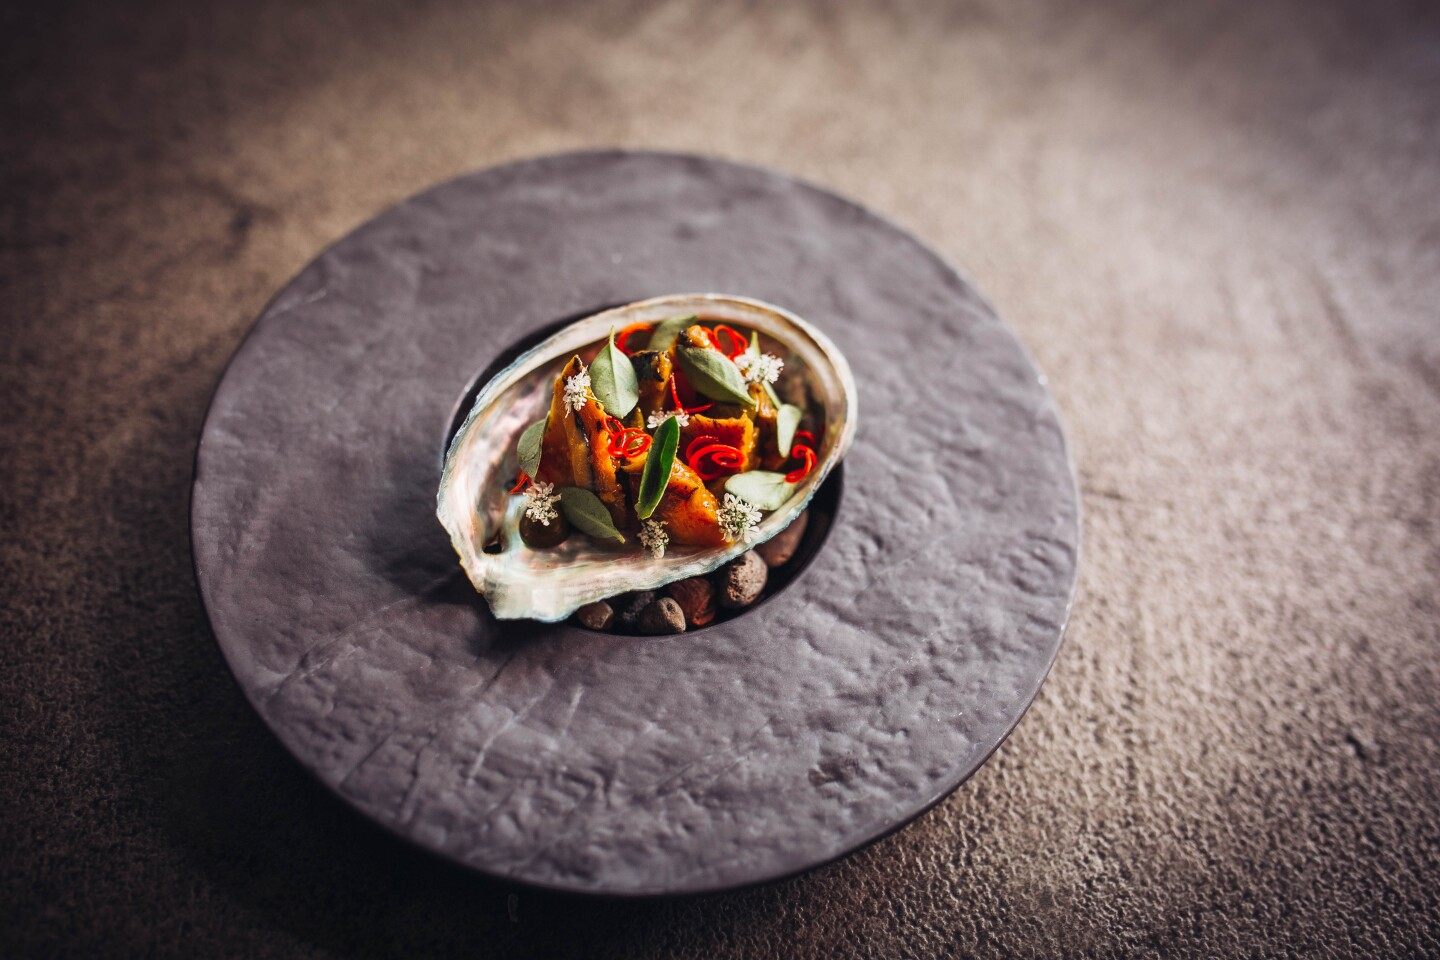 Three cup abalone, sits in a seashell placed atop a round, smooth gray slate. The dish is topped with green leaves and sliced chili.